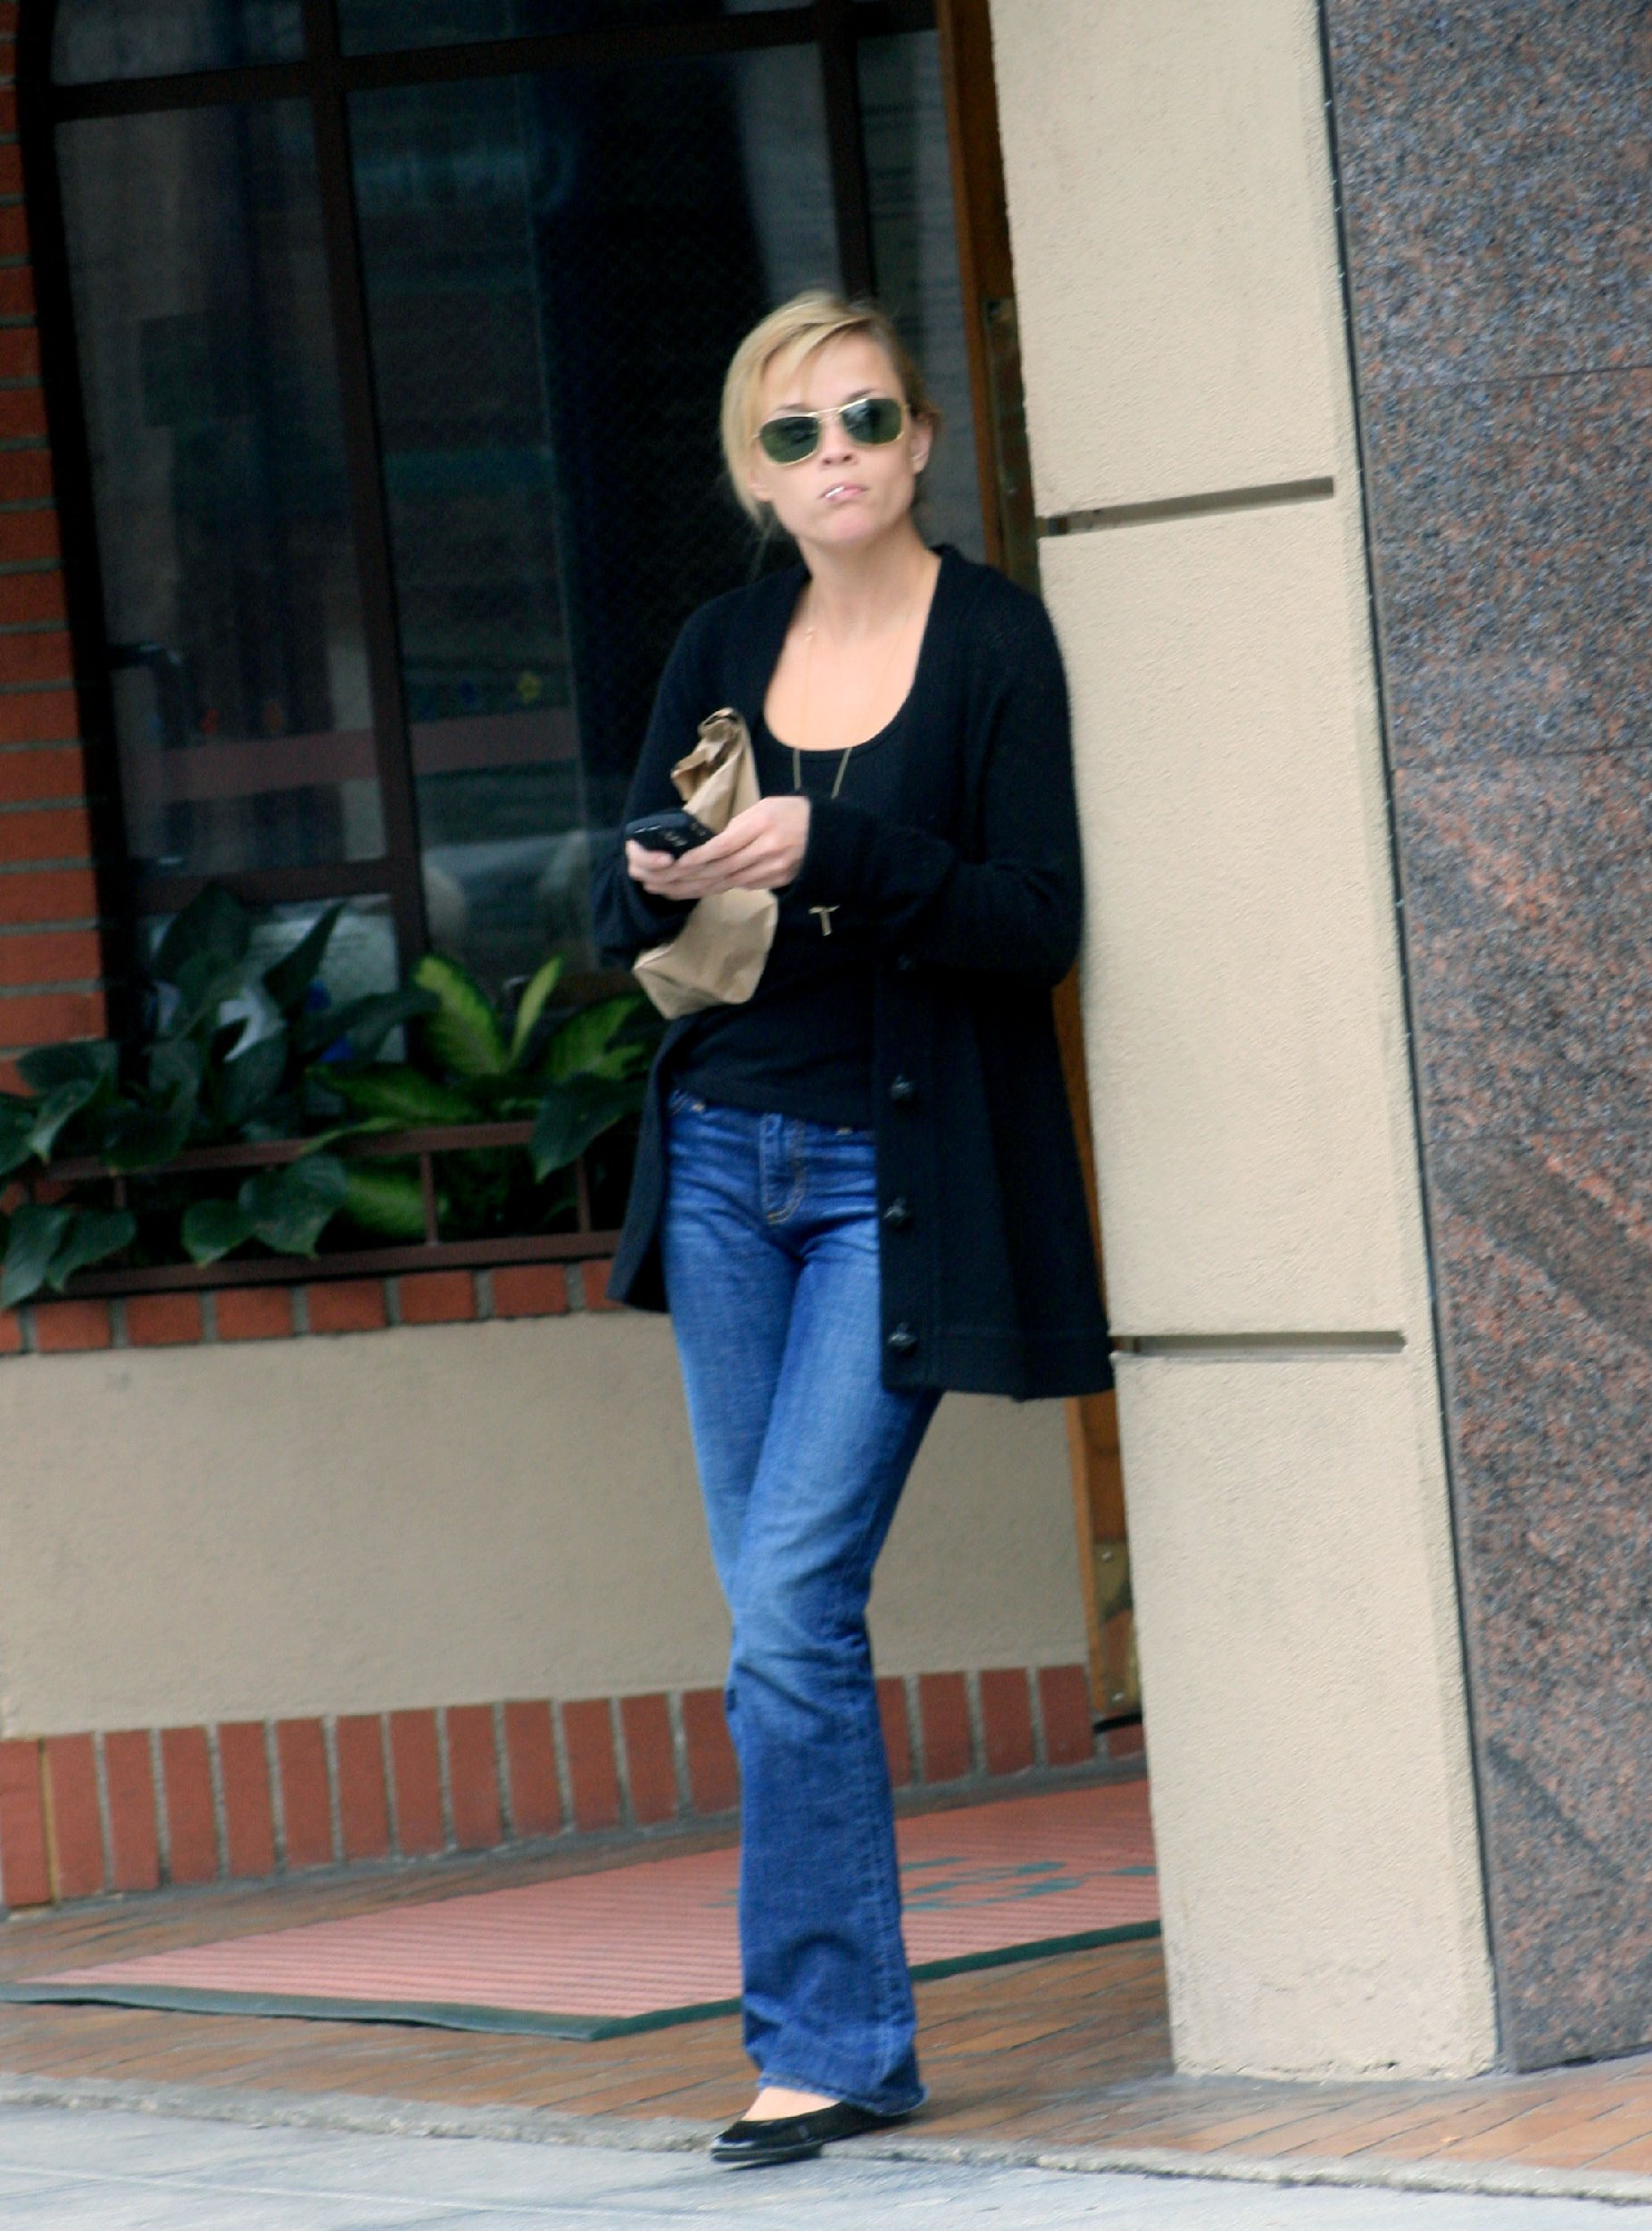 59159_celeb-city.eu_Reese_Witherspoon_leaves_a_medical_building_02_122_148lo.jpg